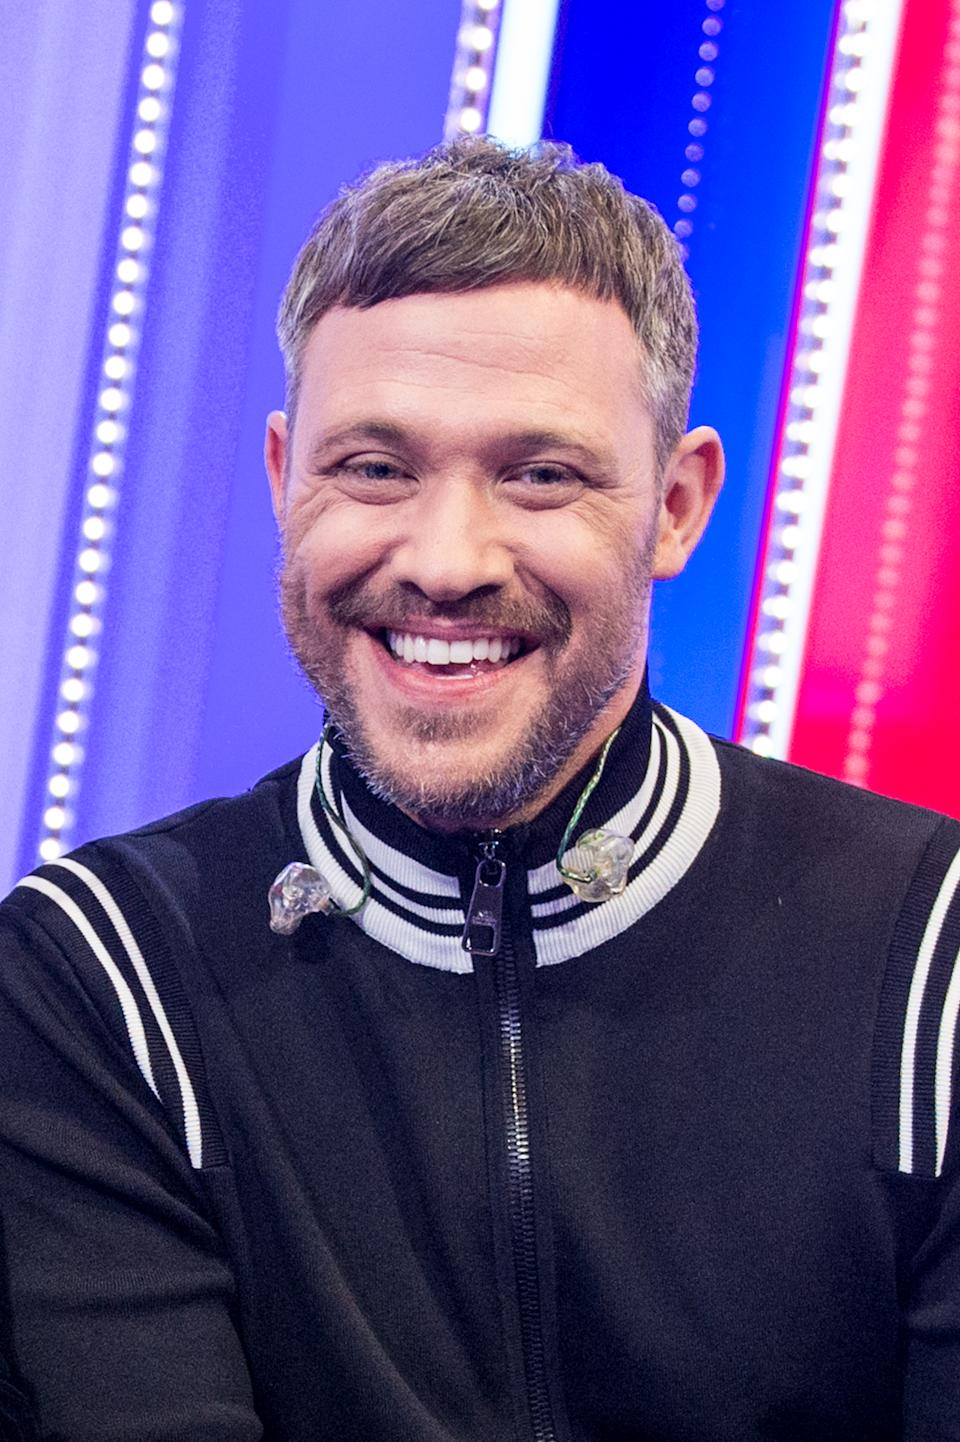 Will Young said his brother battled with his mental health. (Photo by Ollie Millington/Getty Images)